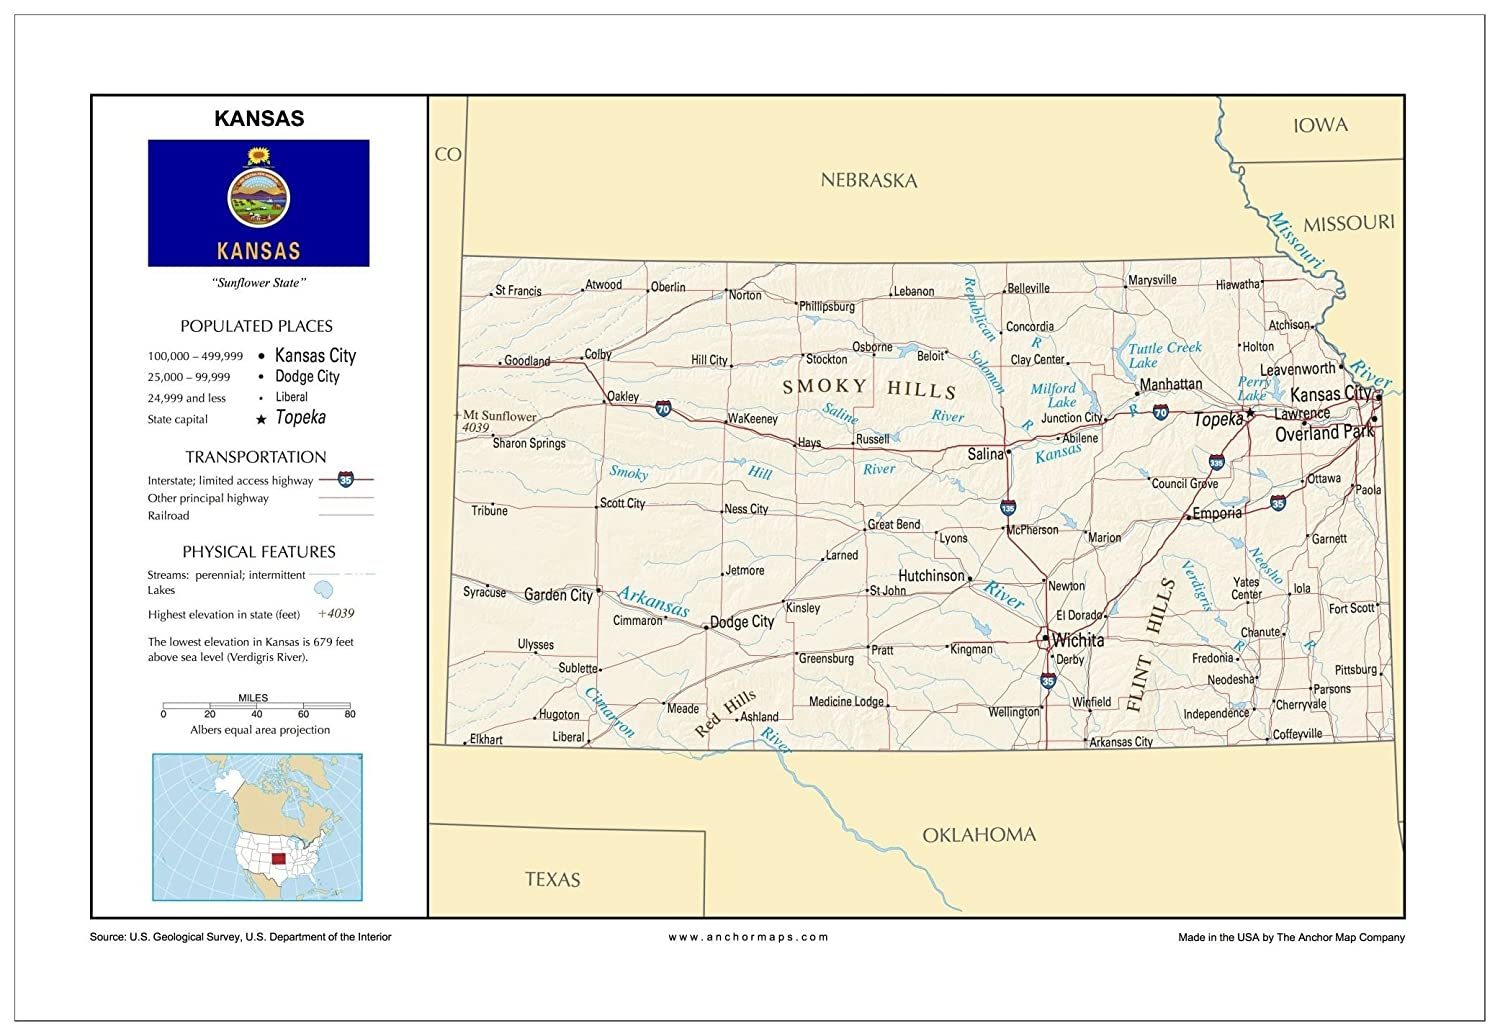 Amazon.com : 13x19 Kansas General Reference Wall Map - Anchor Maps on usa map new orleans, usa map harrisburg, usa map wichita, usa map tampa, usa map chattanooga, usa map united states, usa map santa fe, usa map savannah, usa map eastern pennsylvania, usa map buffalo, usa map cincinnati, usa map charleston, usa map grand rapids, usa map memphis tn, usa map long island, usa map st. louis, usa map fort lauderdale, usa map fort worth, usa map mobile, usa map states labeled,